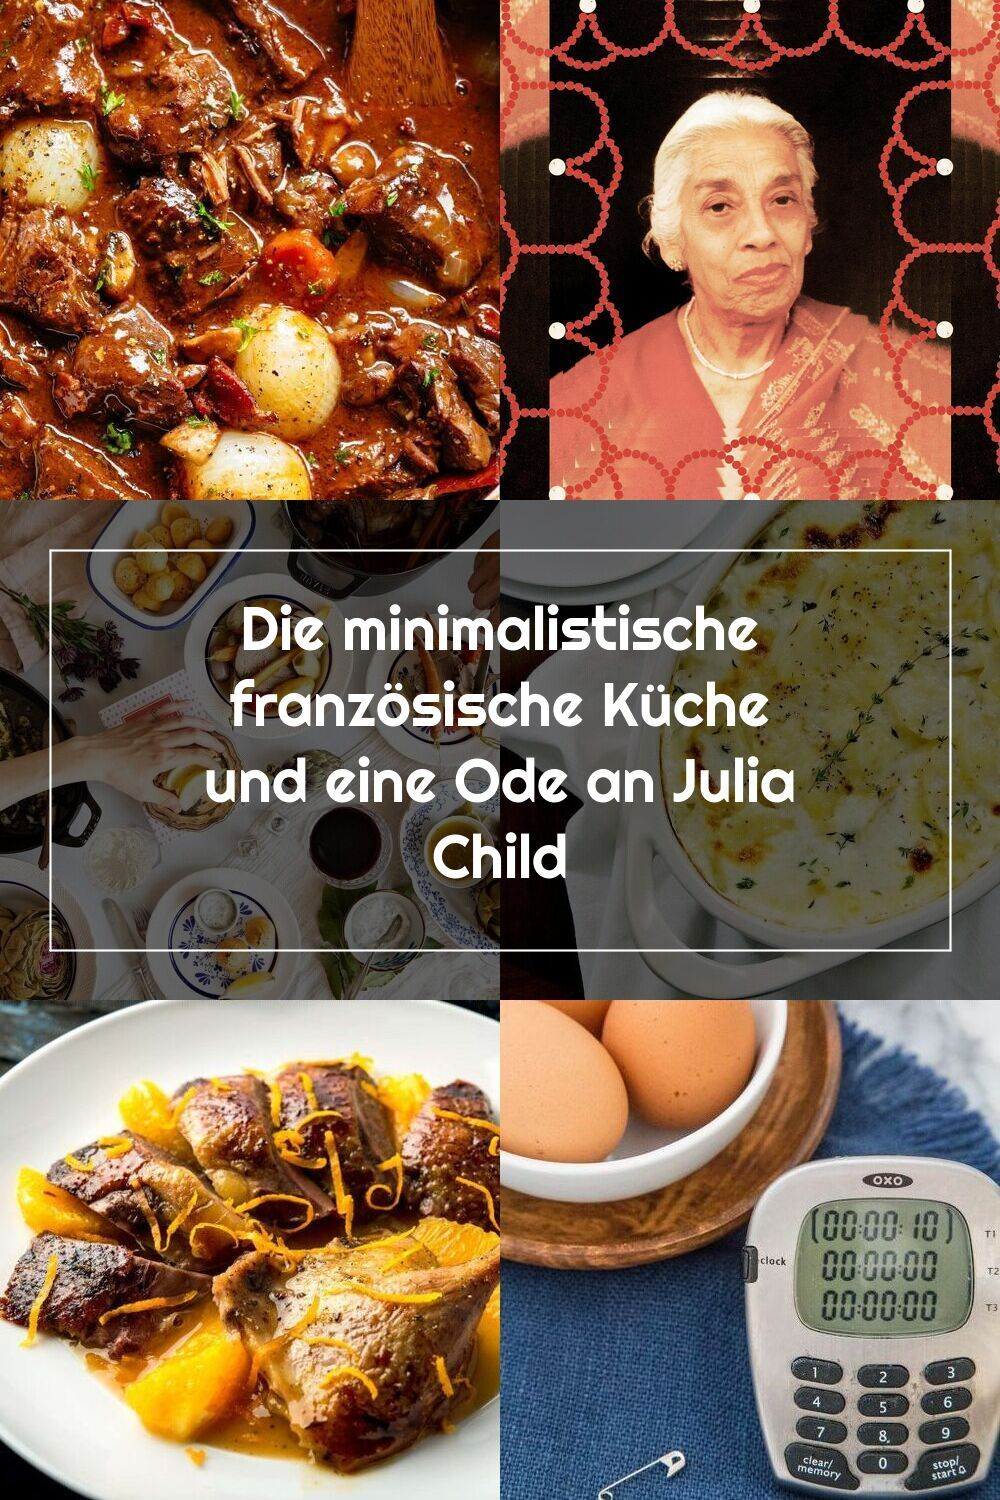 Die Minimalistische Franzosische Kuche Und Eine Ode An Julia Child Kitchen Stories In 2020 Julia Child Julia Children